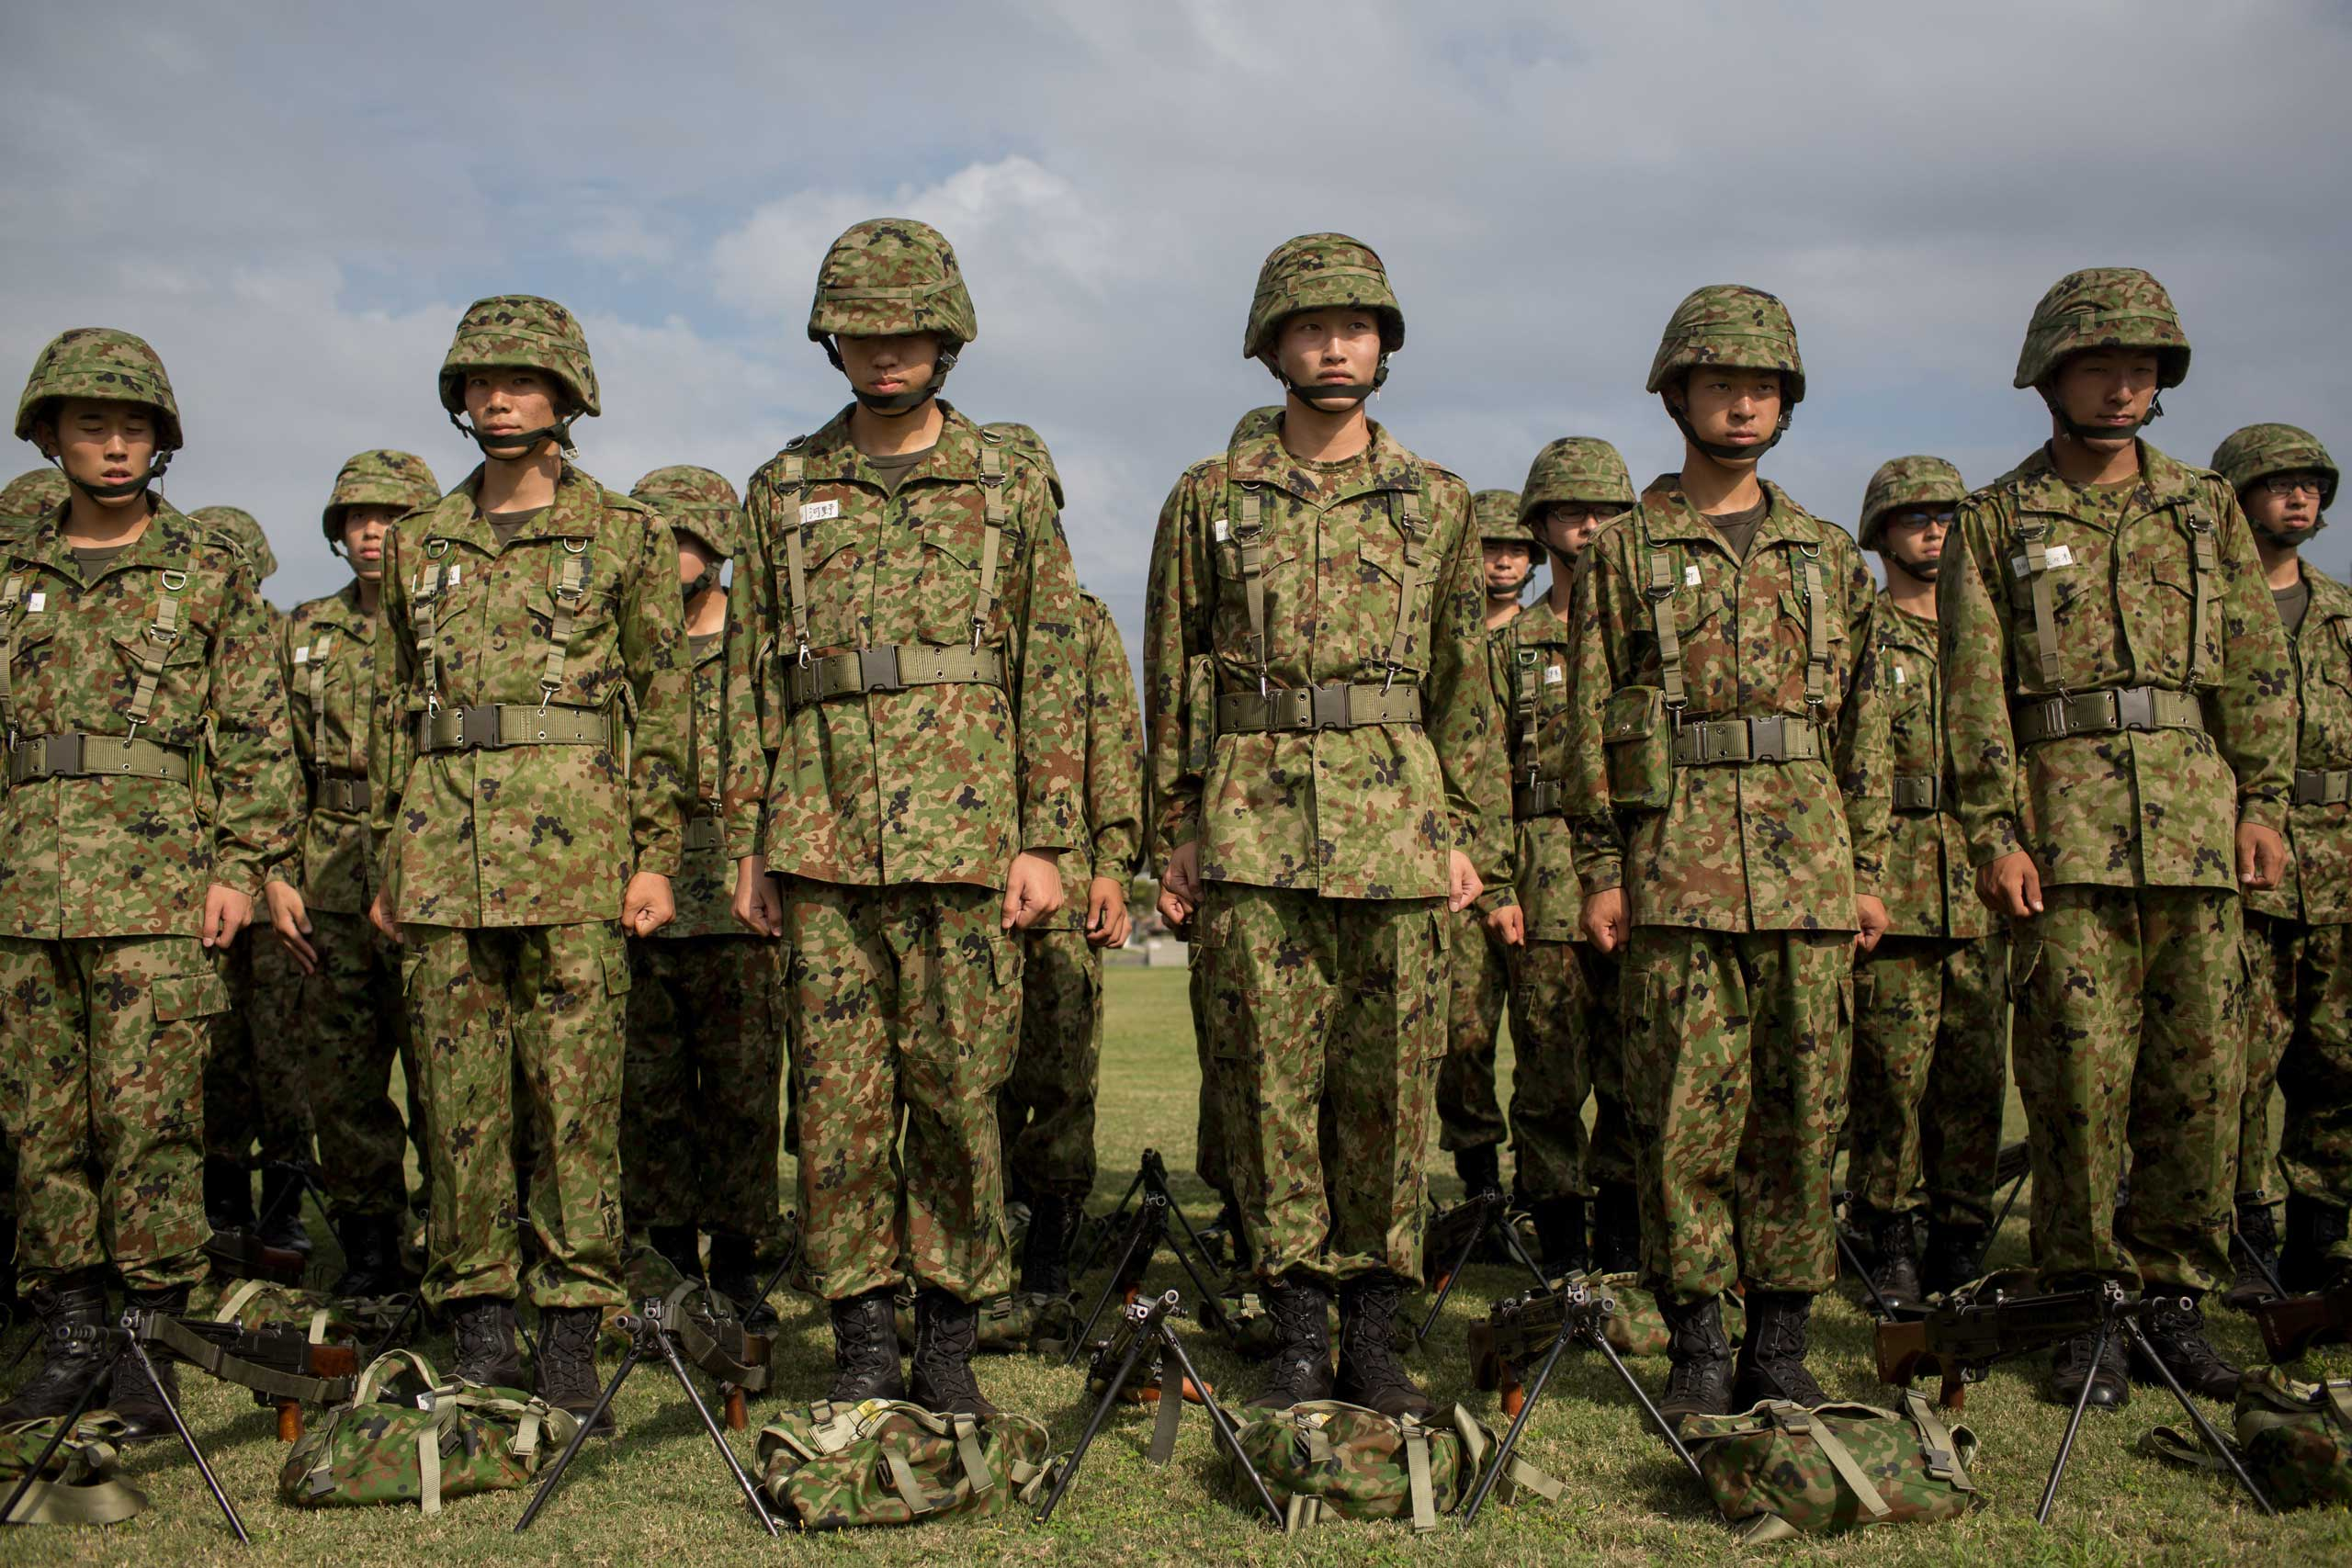 Students listen to instructions during rifle training at the Japan Ground Self-Defense Force High Technical School on Sept. 17, 2014 in Yokosuka, Japan.